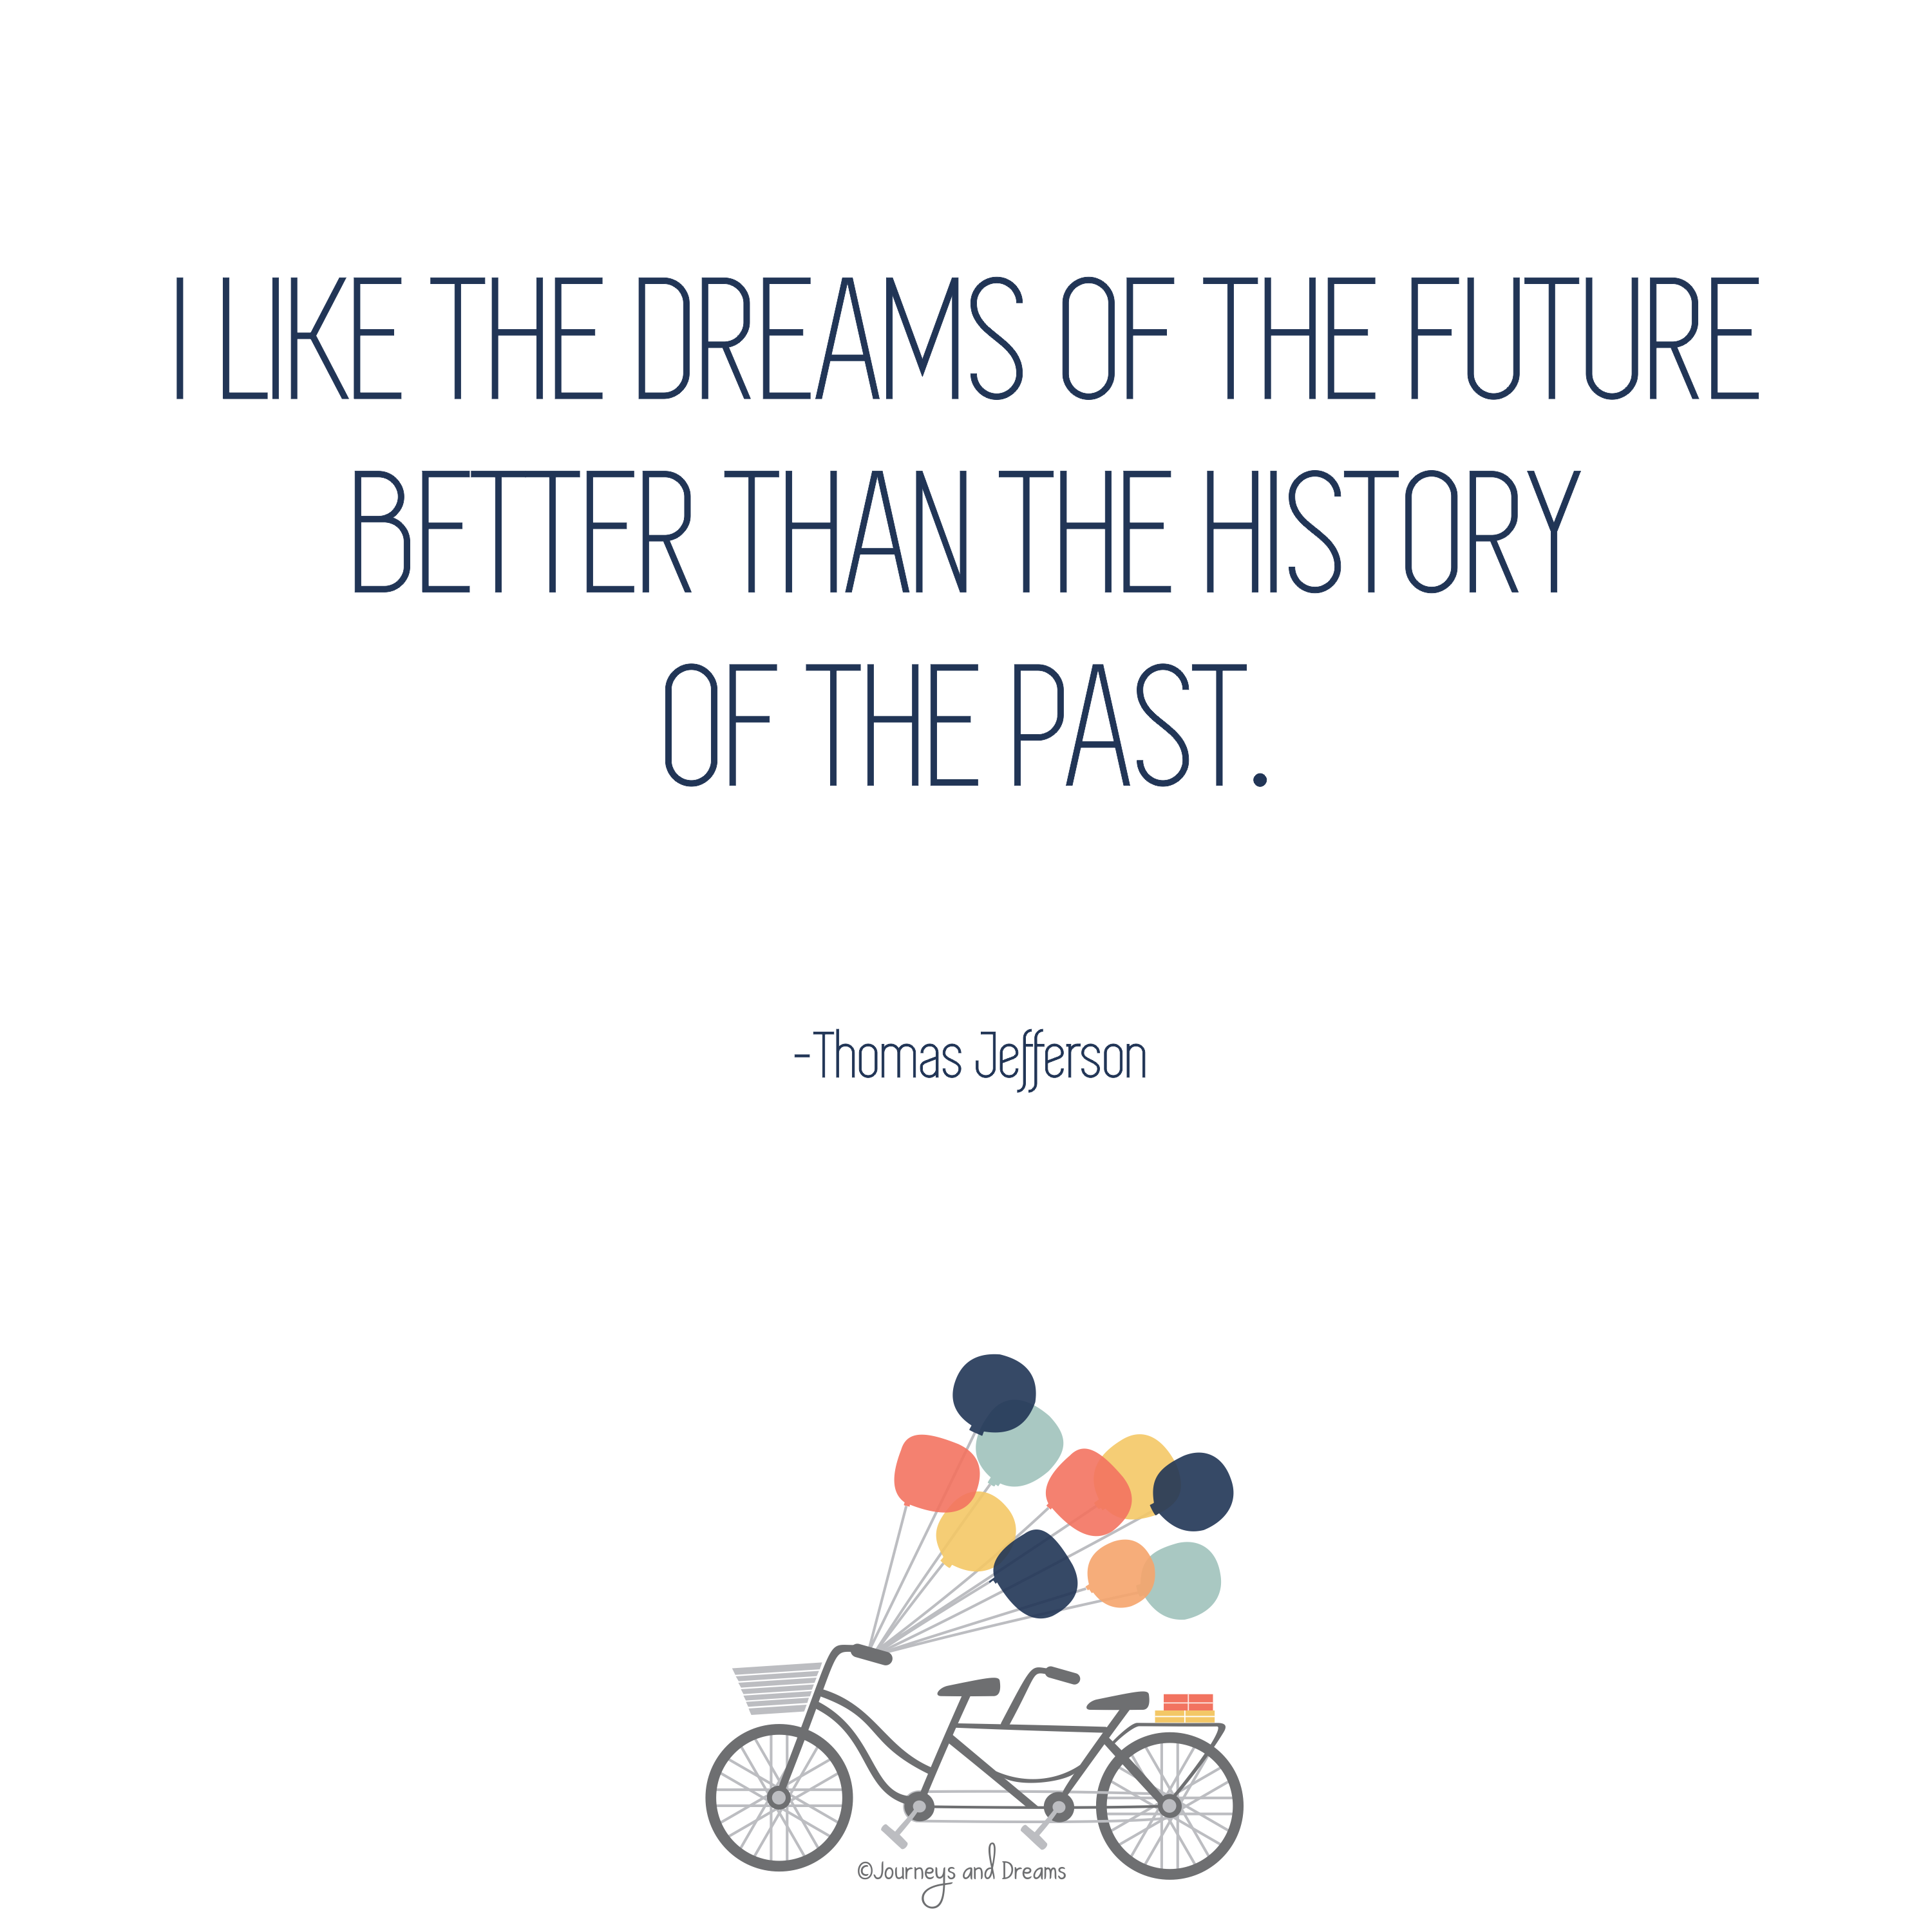 I Like The Dreams Of The Future Better Than The History Of The Past Thomas Jefferson In Inspirational Quotes Encouragement Quotes Health And Wellness Coach